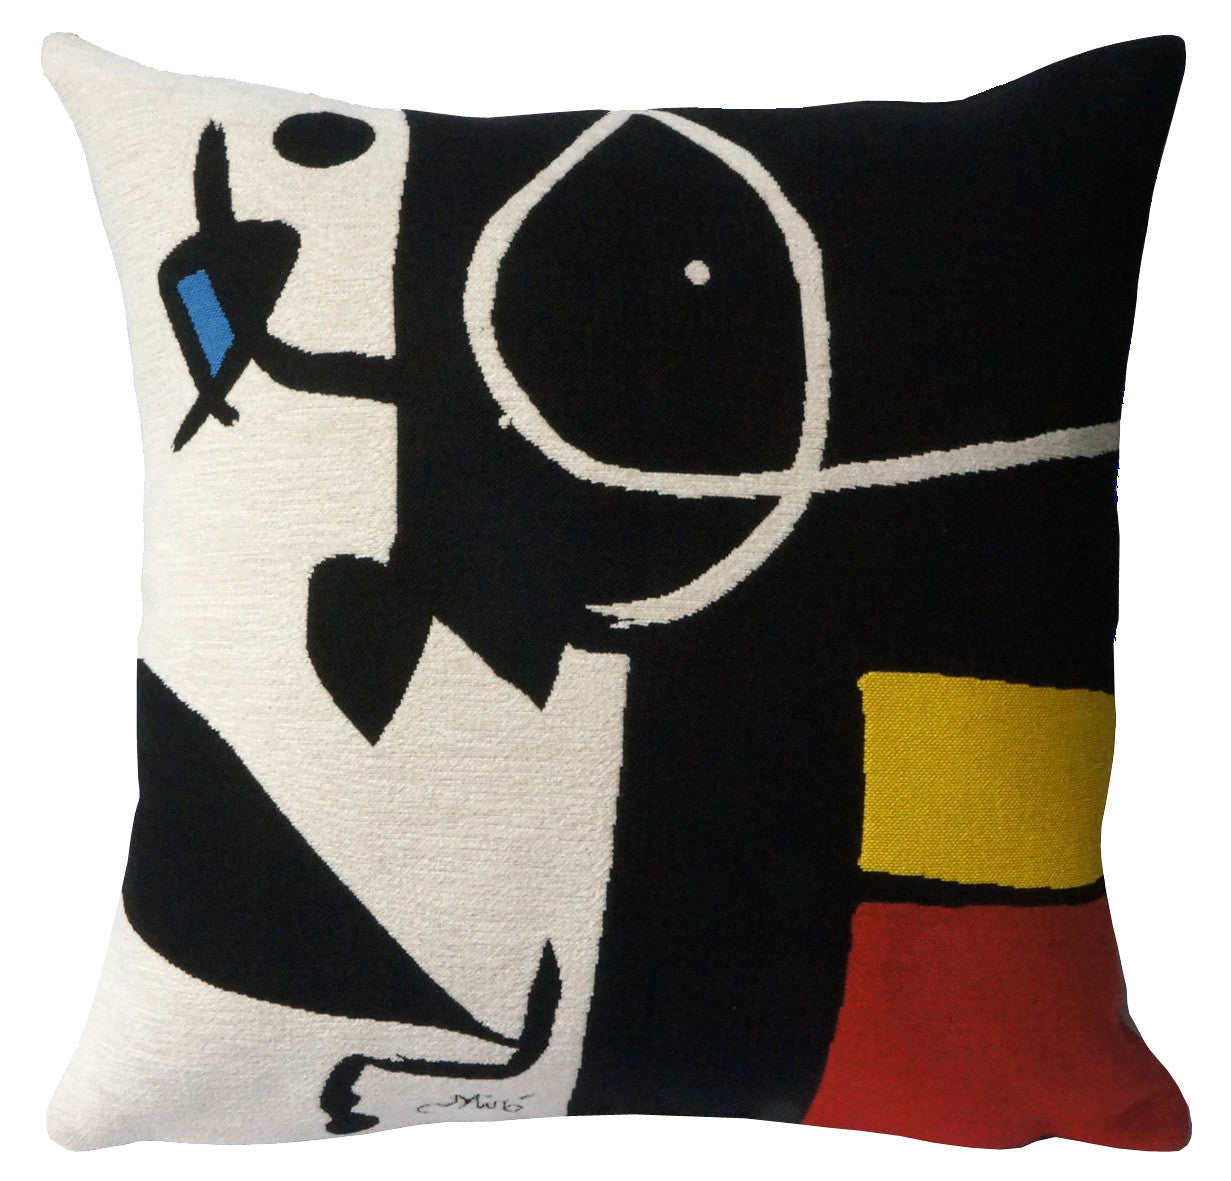 Femme Oiseau 1976 - Miro Cushion Cover - SALE